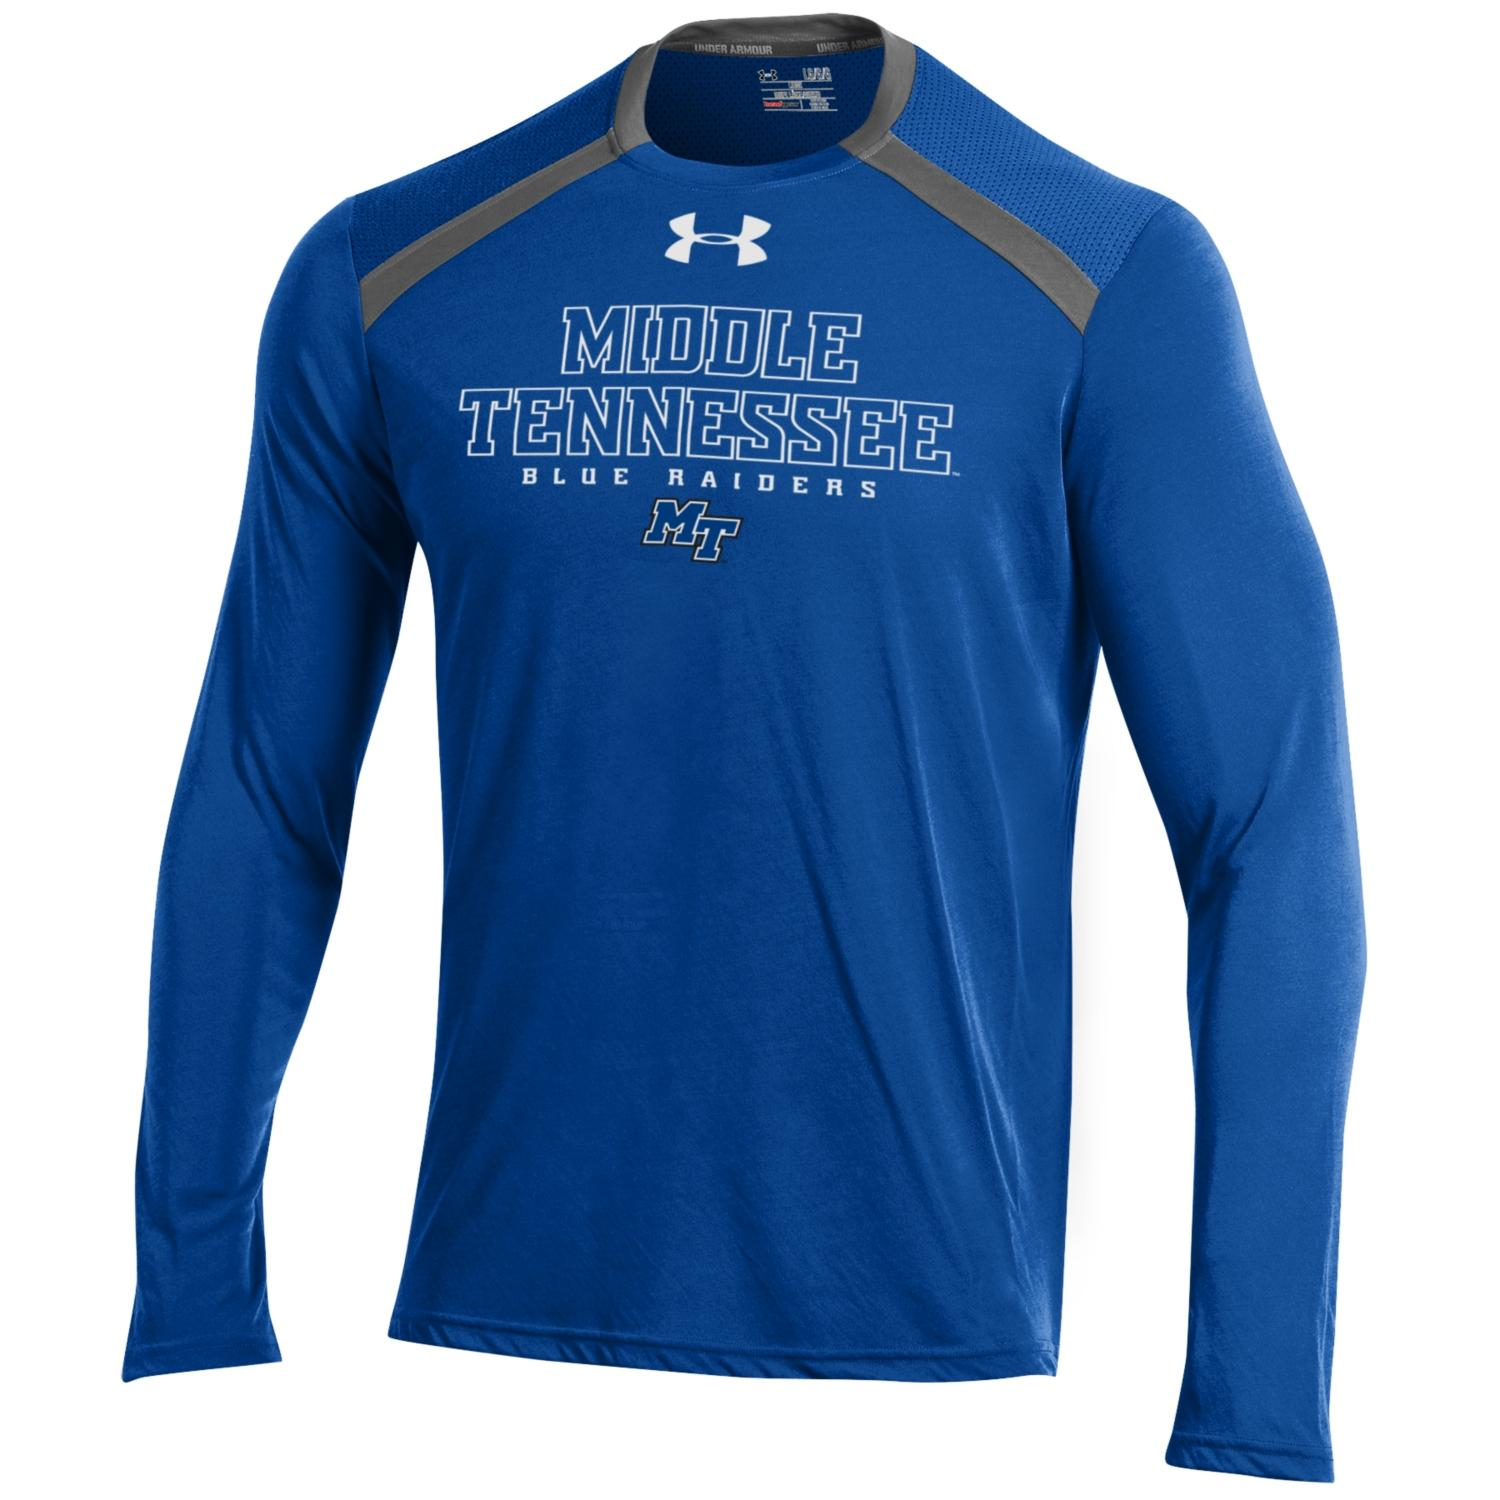 Middle Tennessee Blue Raiders SMU Threadborne Vented Tech Long Sleeve Shirt